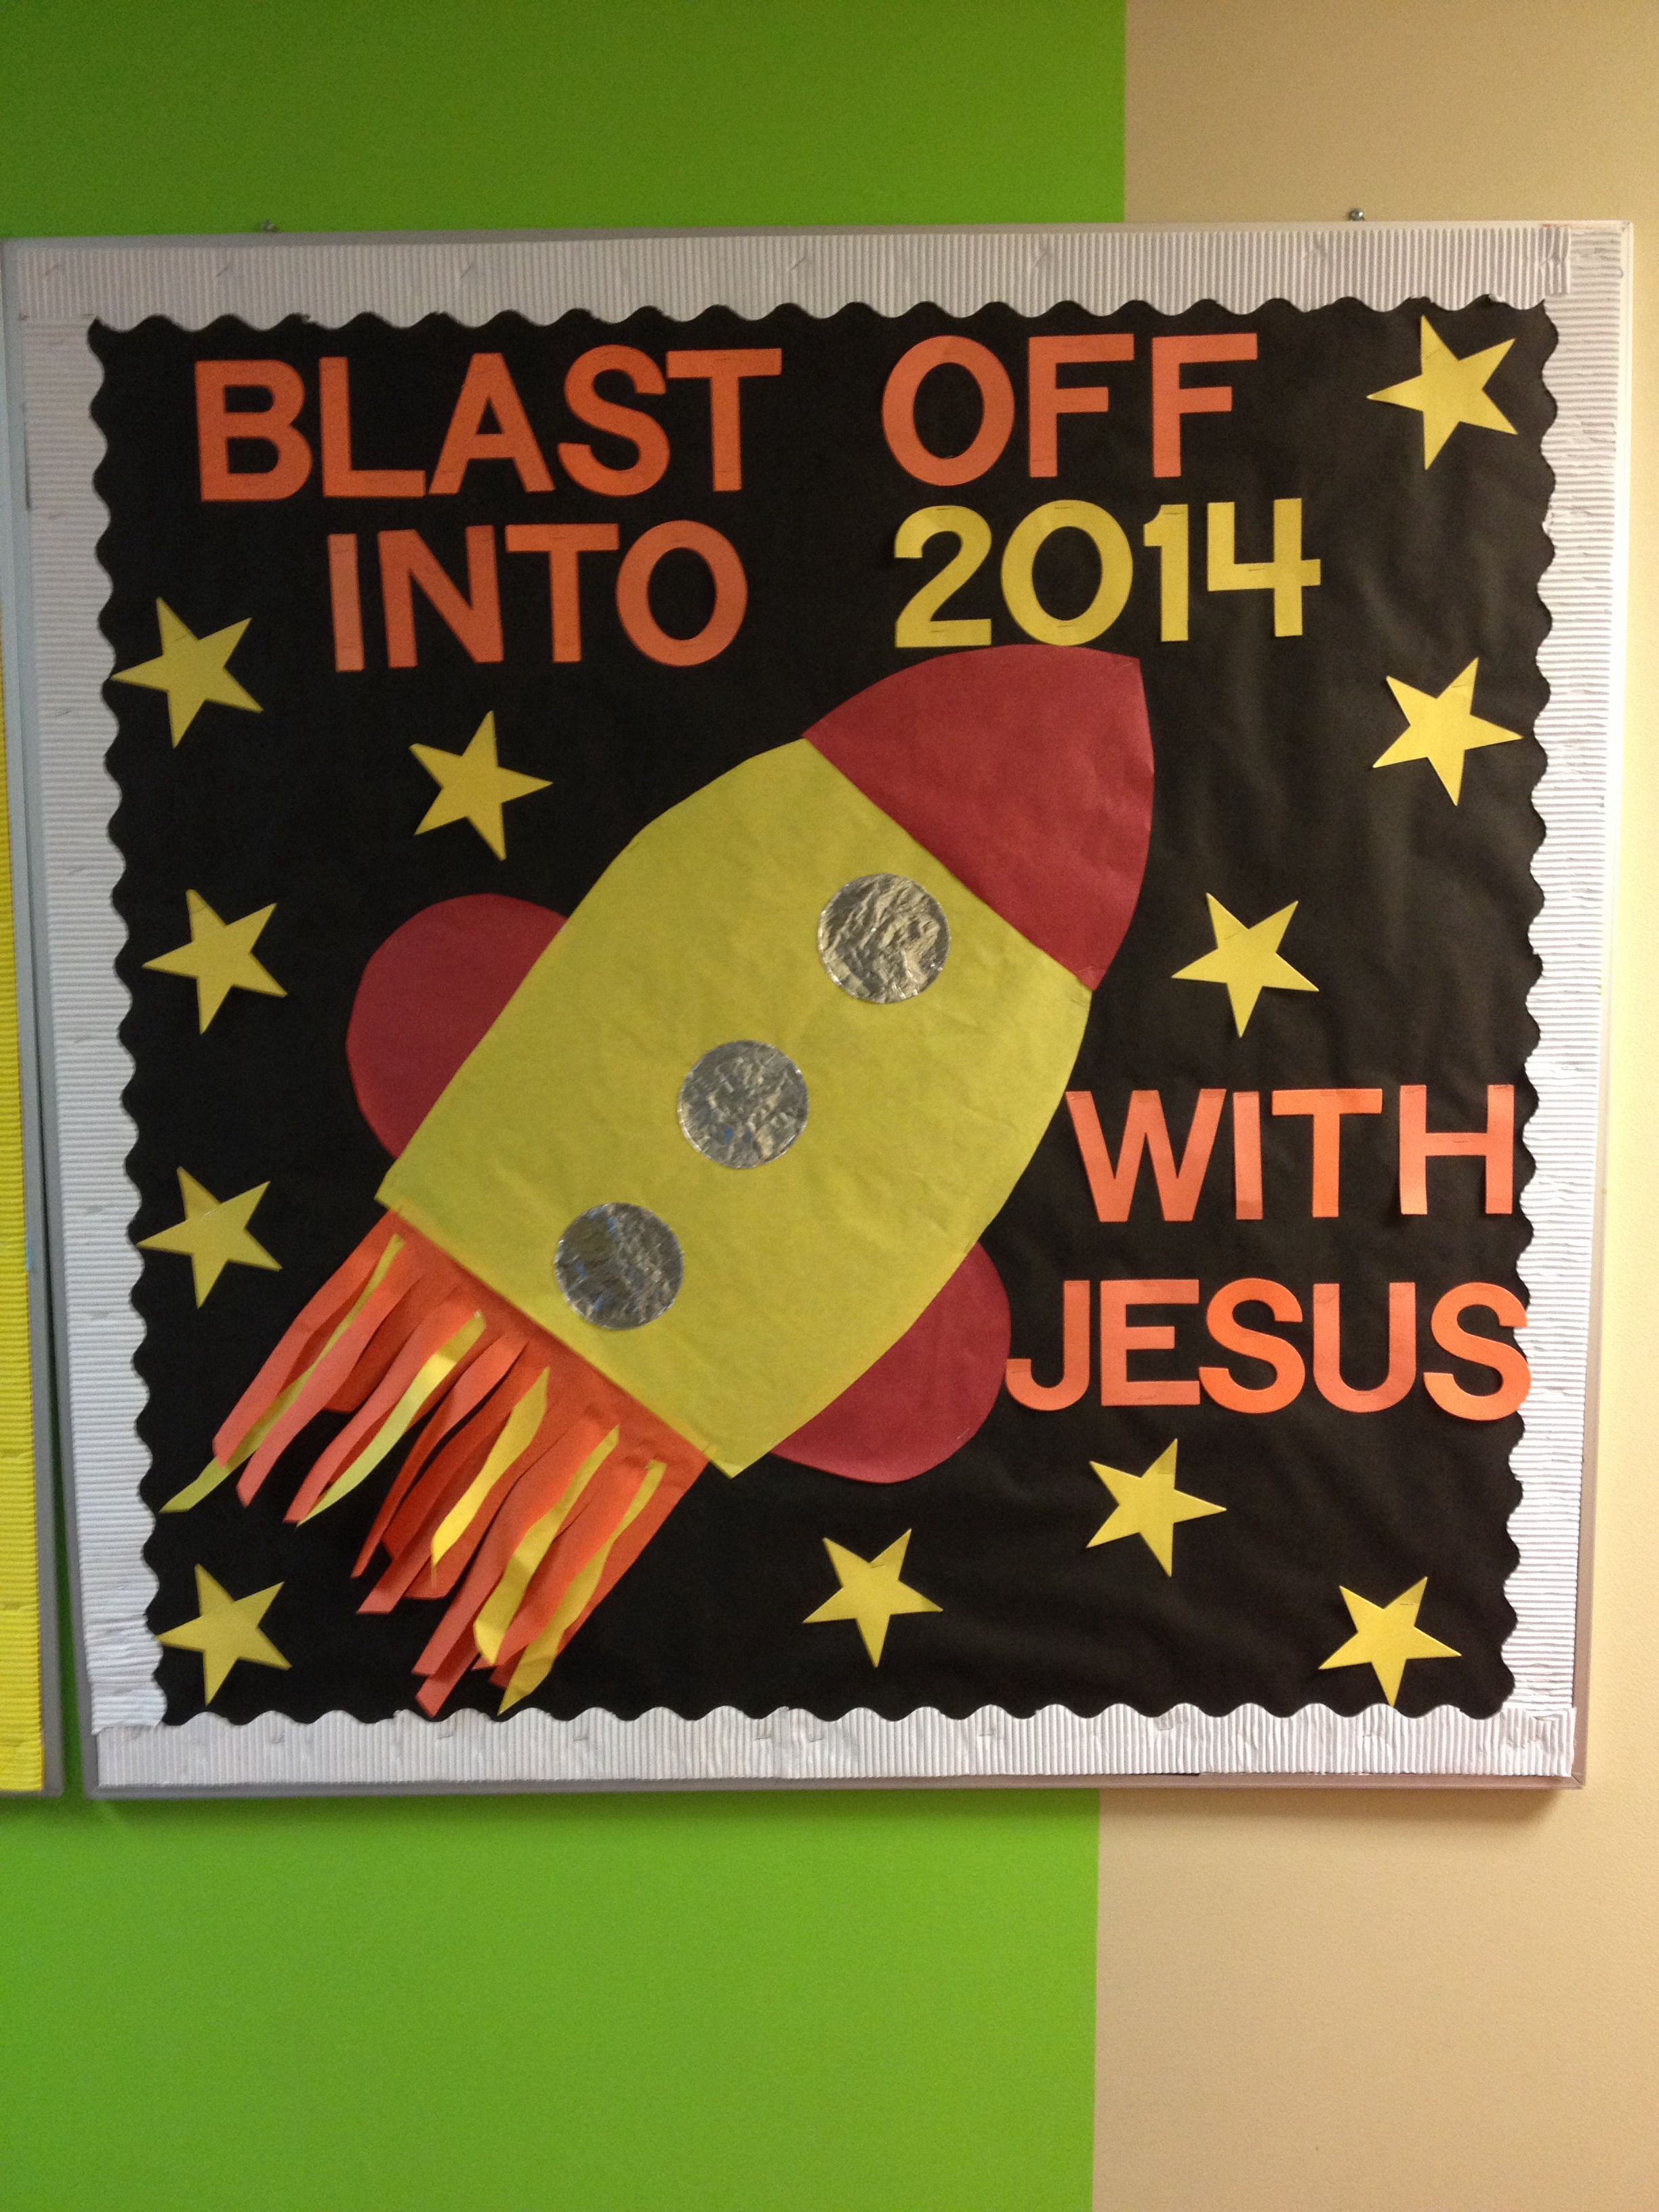 Blast Bulletin Board 2014 Church Kidmin